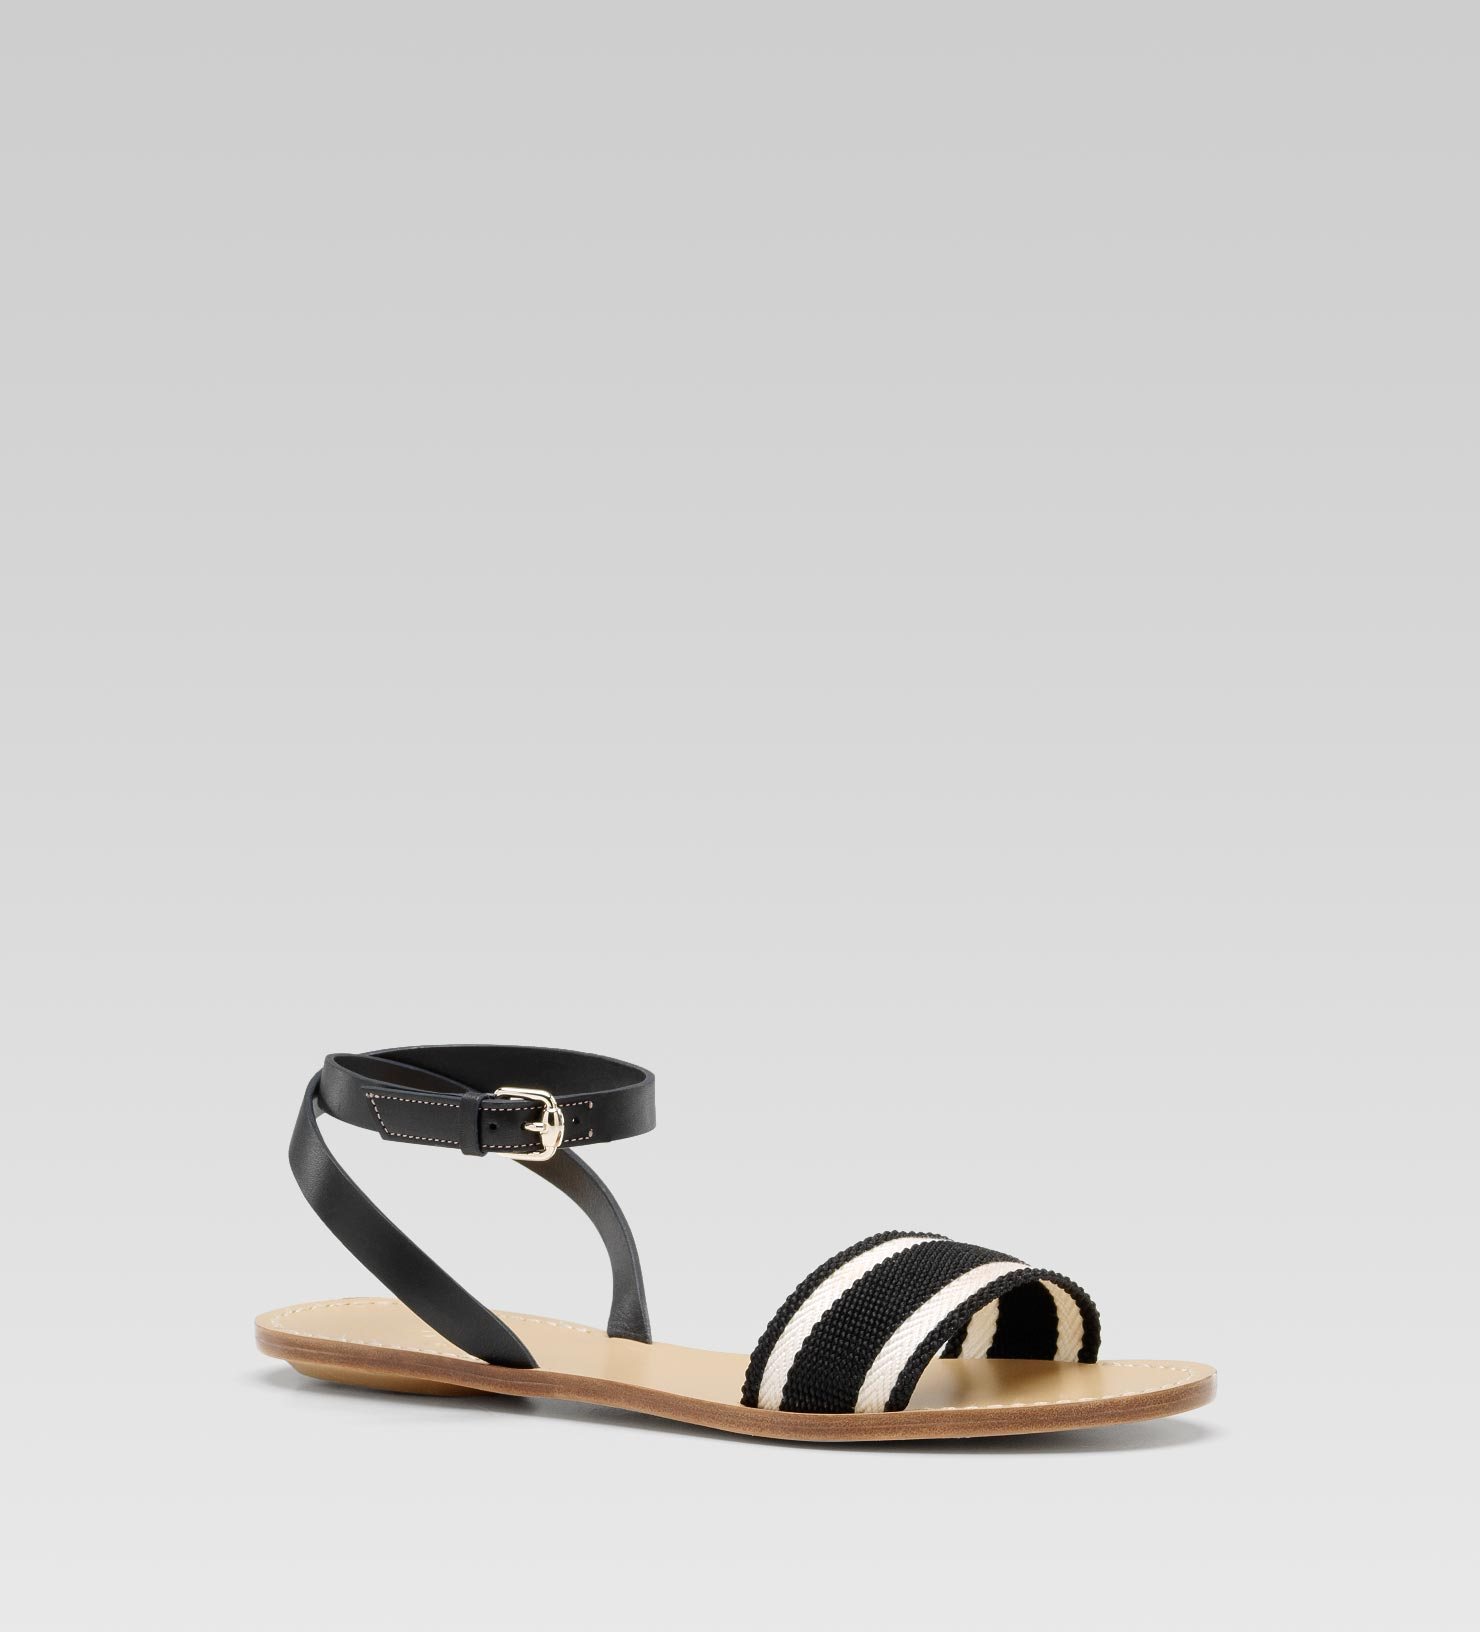 eca427e0d Gucci Vintage Web Flat Sandal with Ankle Strap in Black - Lyst